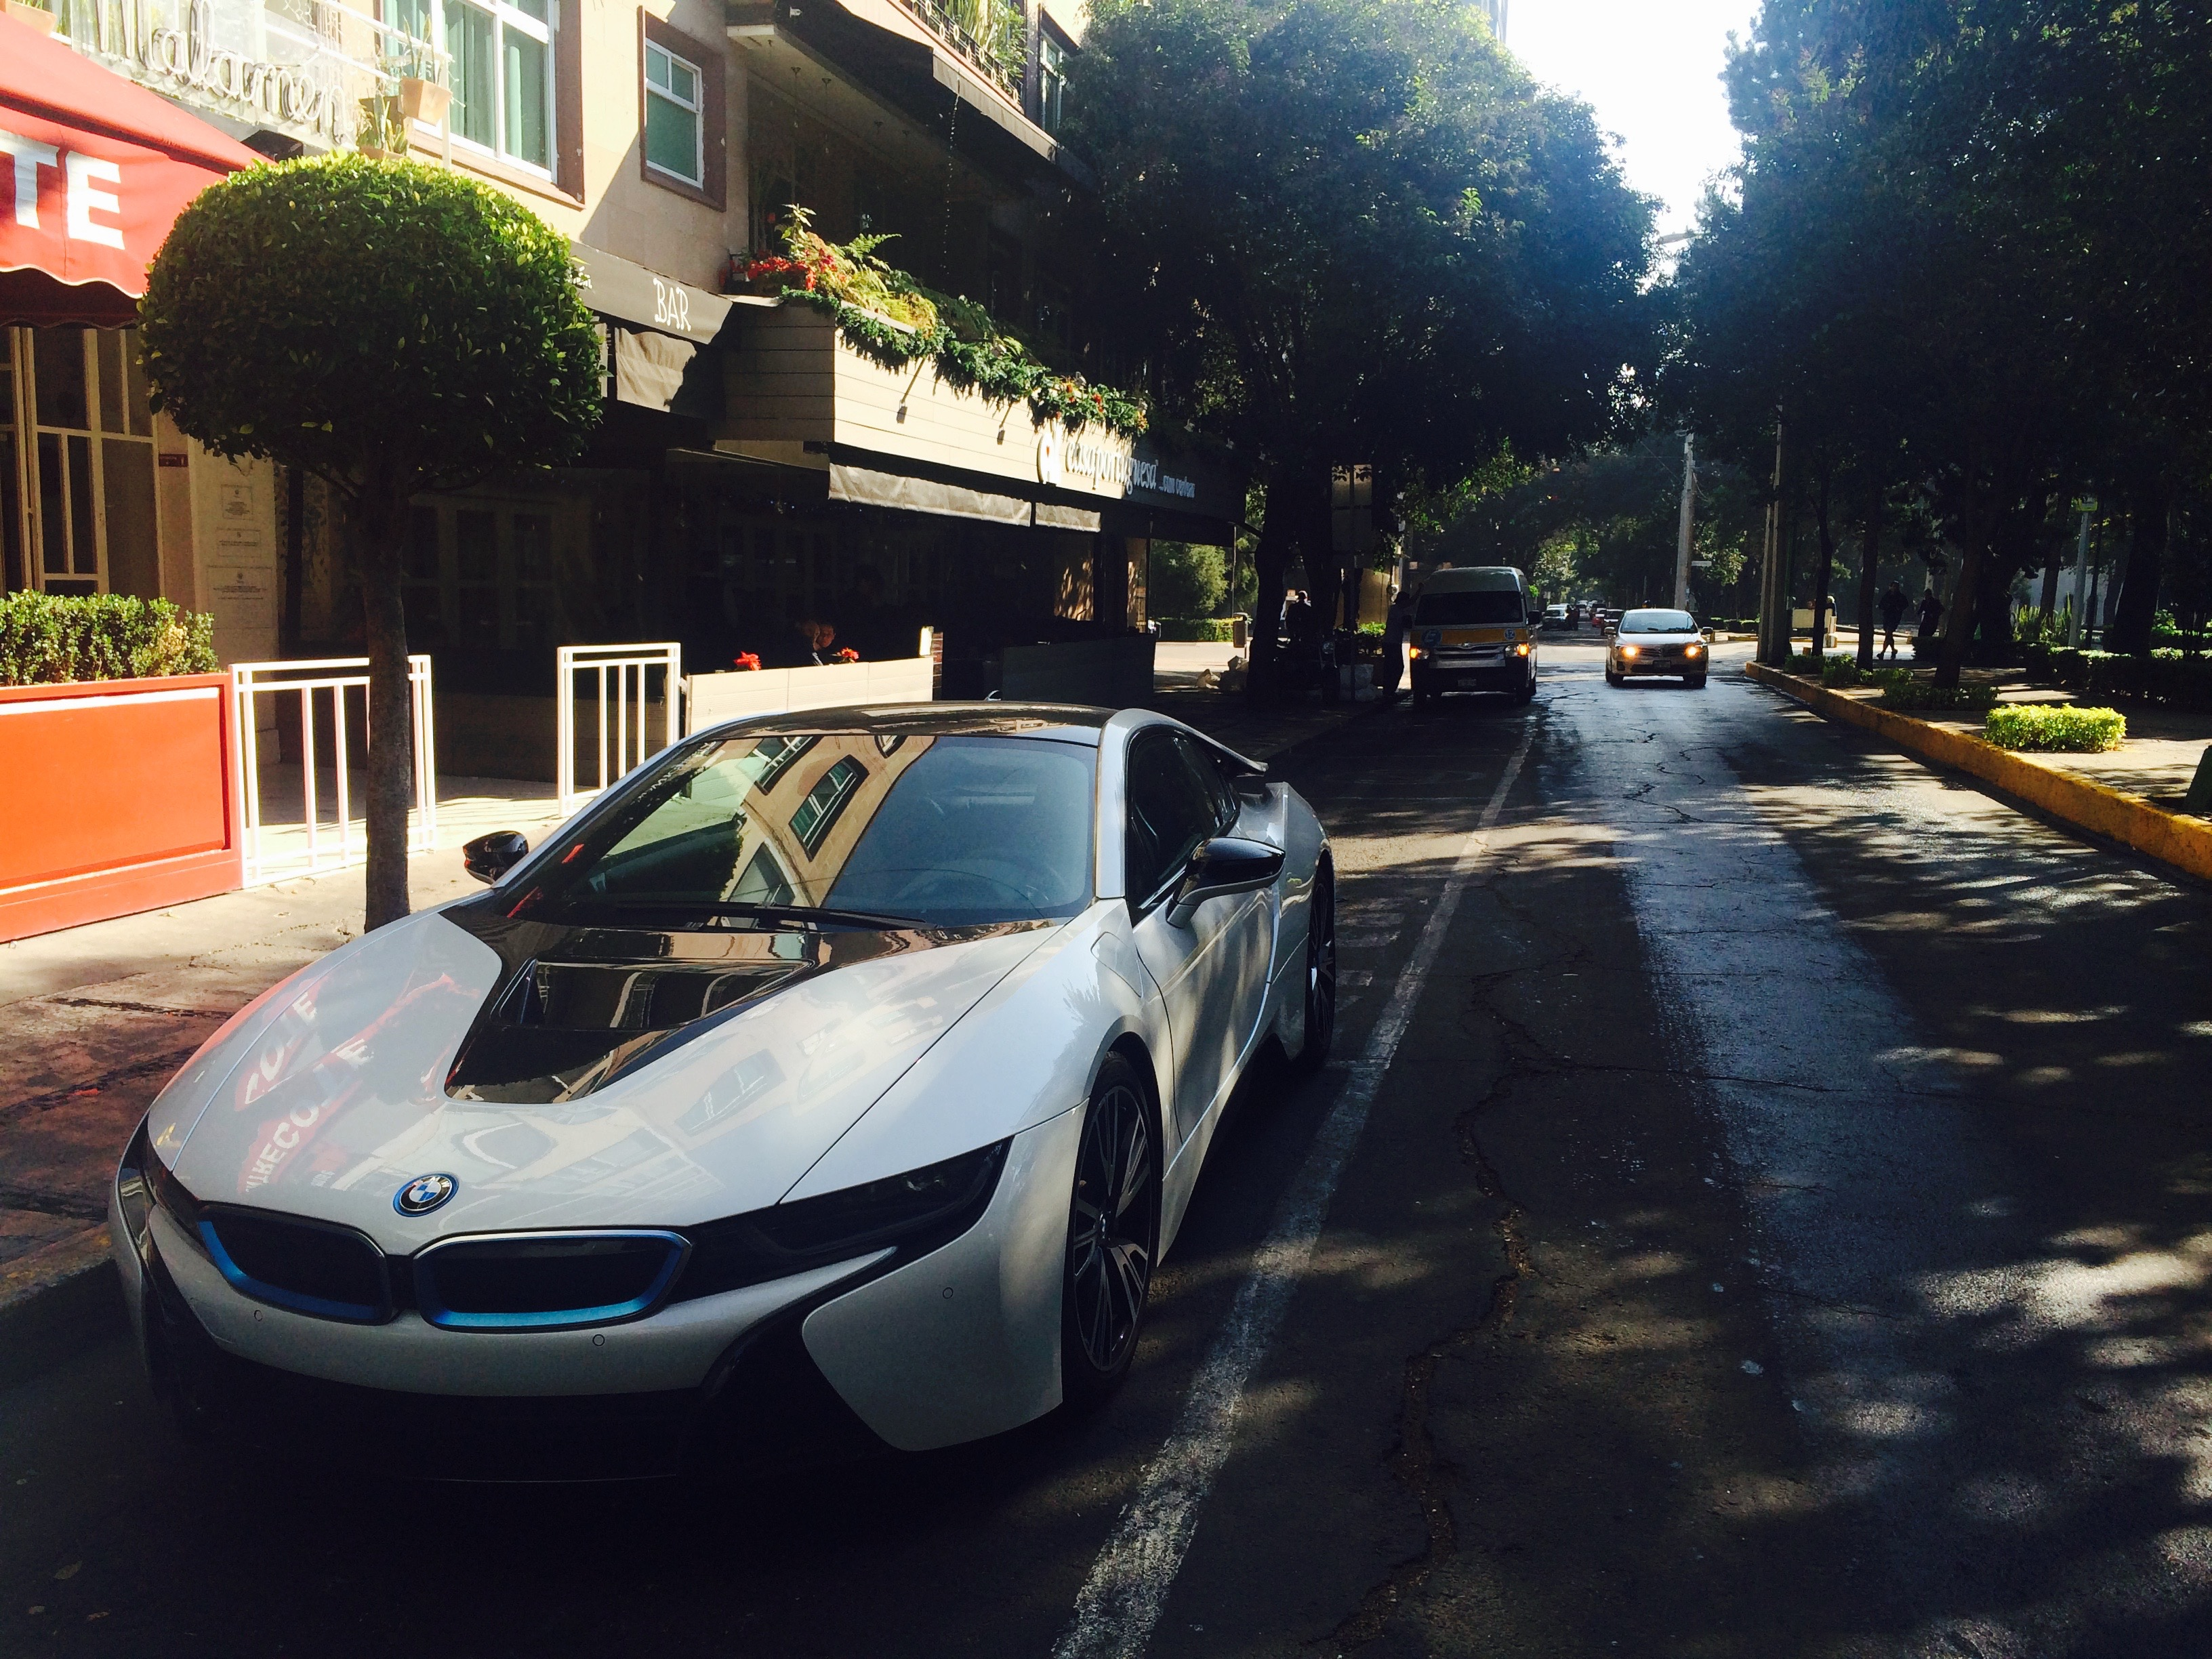 BMW i8 in Polanco, CDMX